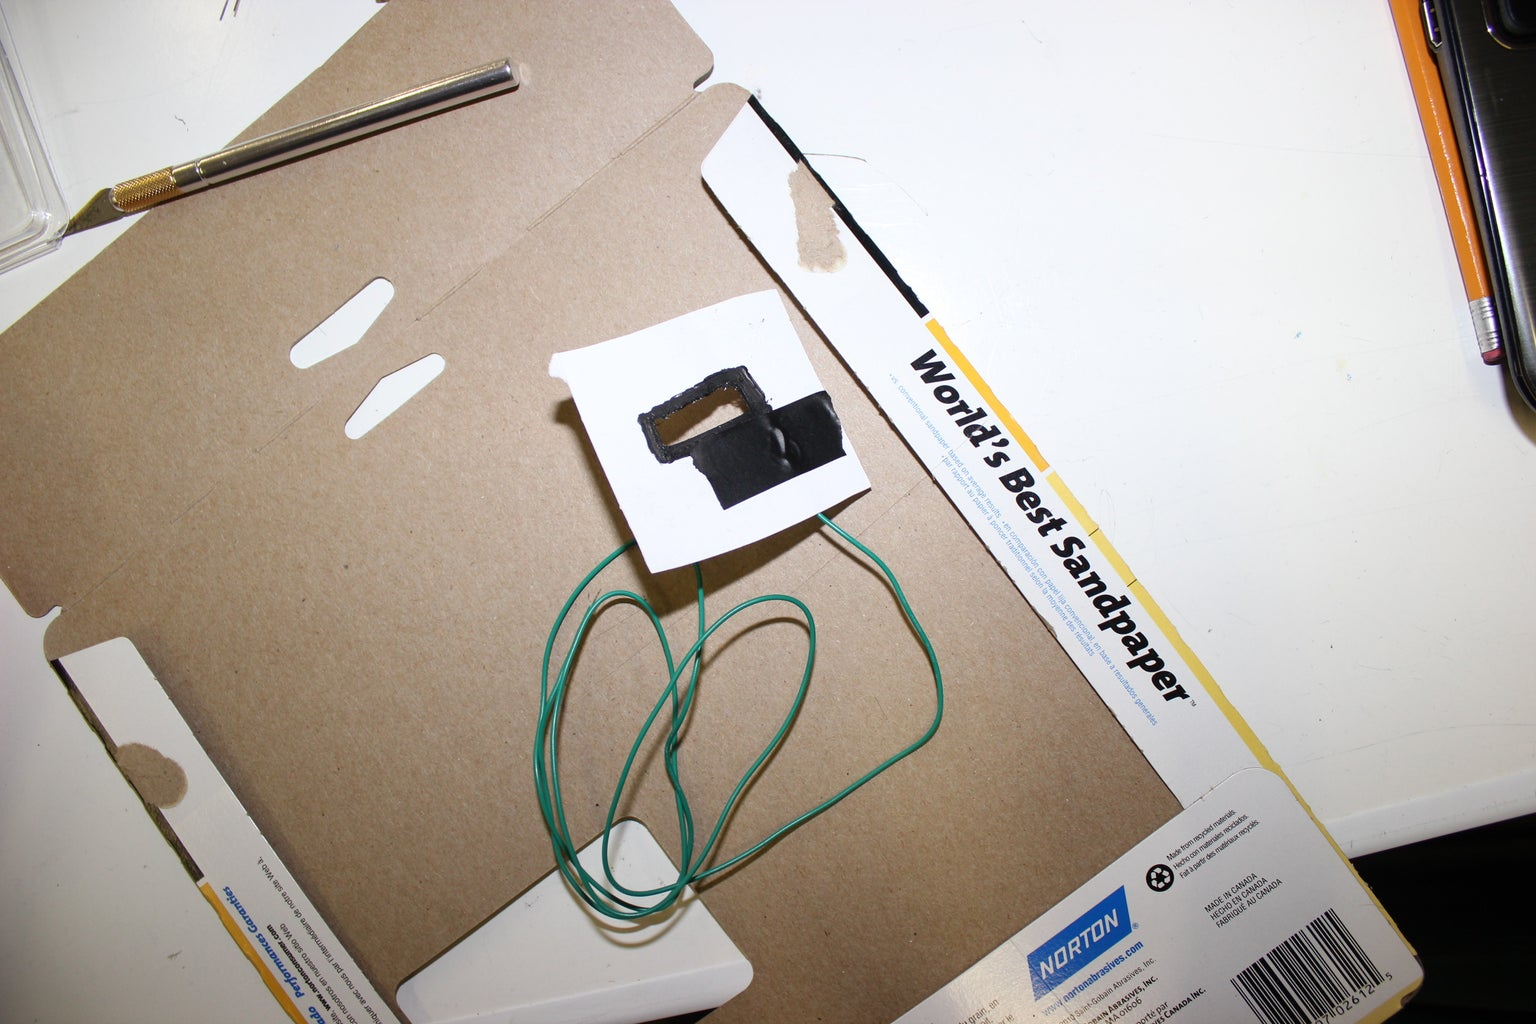 Step 004 - Attach the Wire to the Conductive Paint